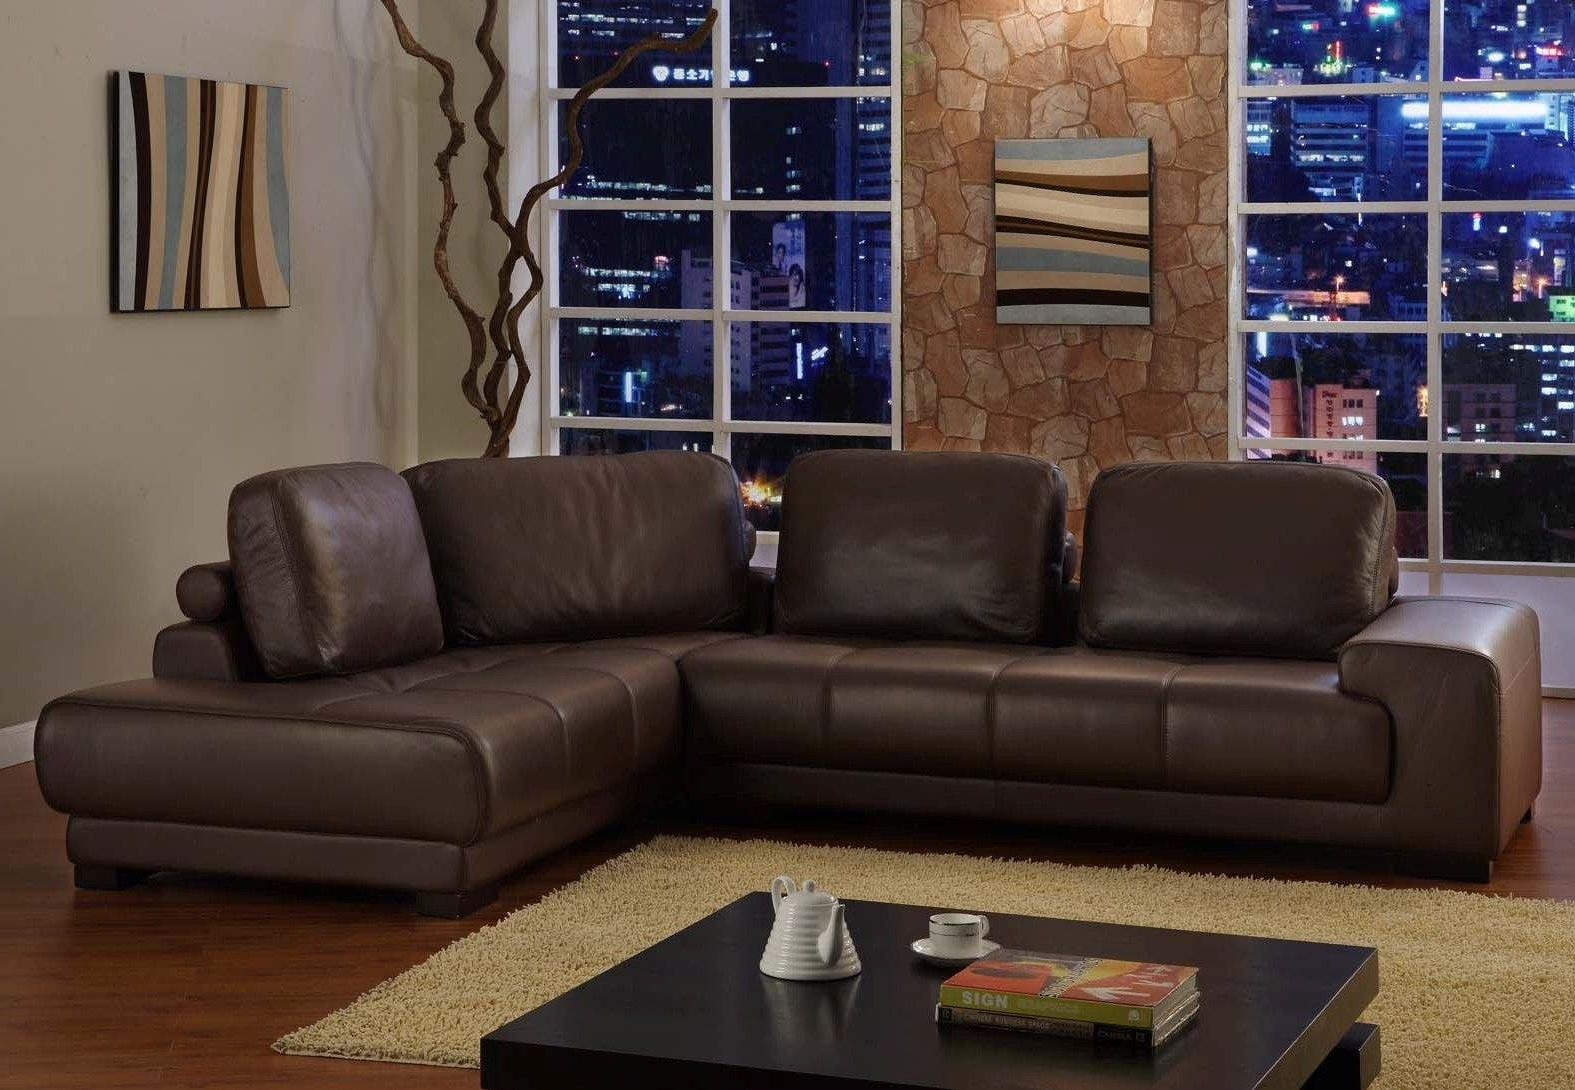 Best And Newest High Quality Sectional Sofas Throughout Sectional Sofa Clearance: The Best Way To Get High Quality Sofa In (View 20 of 20)